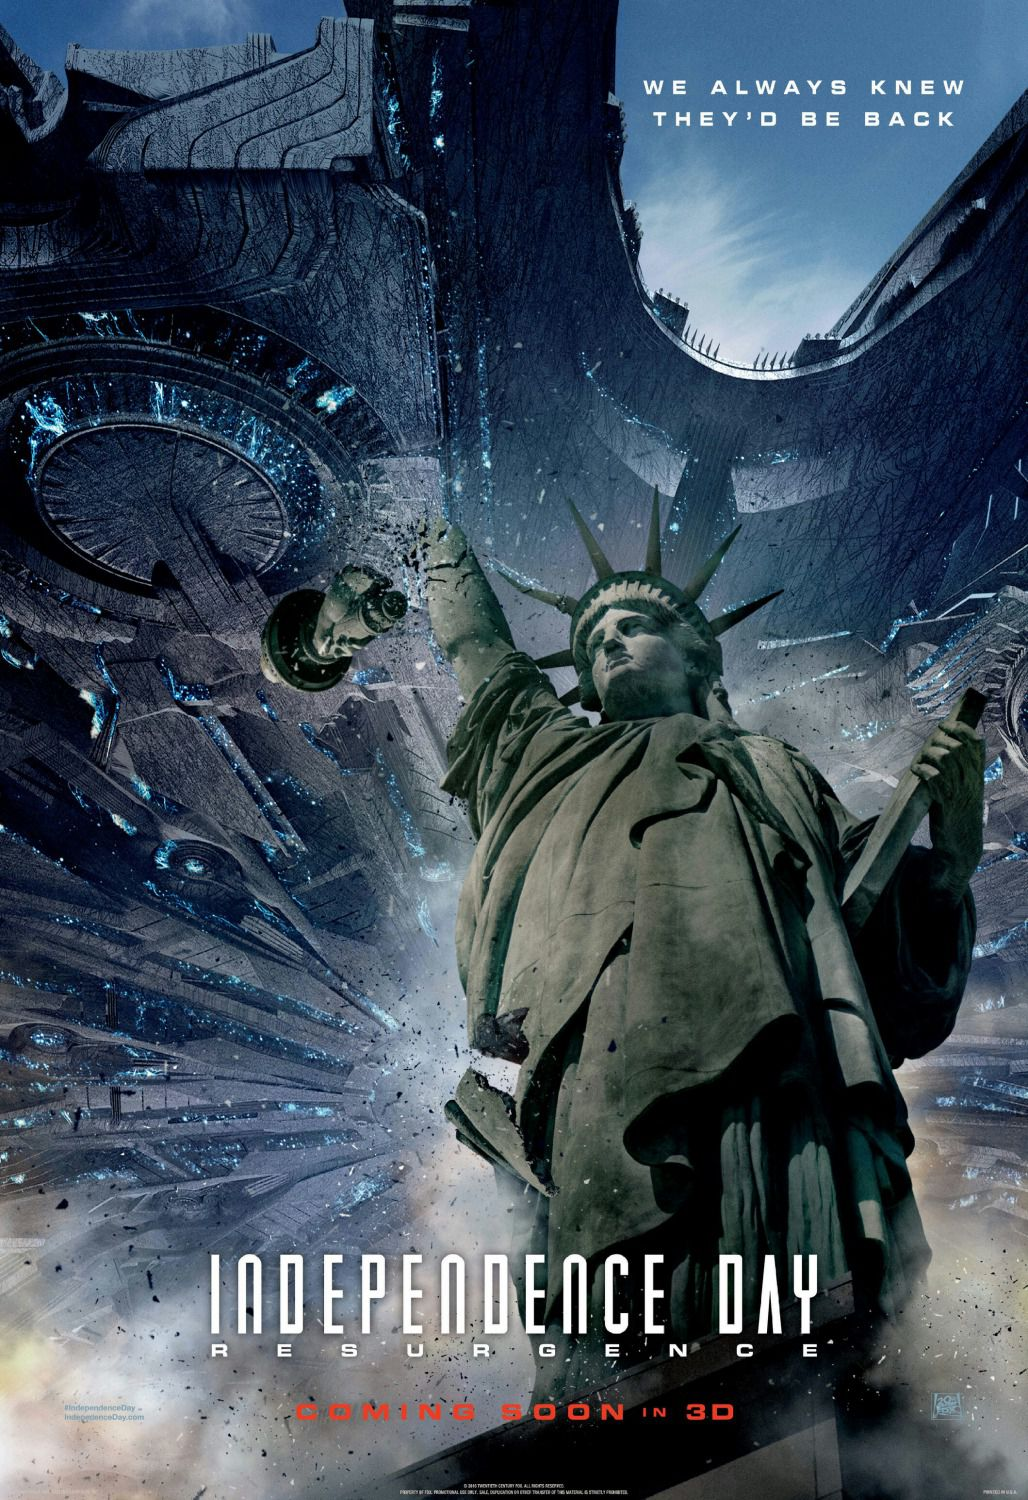 Independence Day Resurgence - film poster Paris NY Statua Libertà Libery